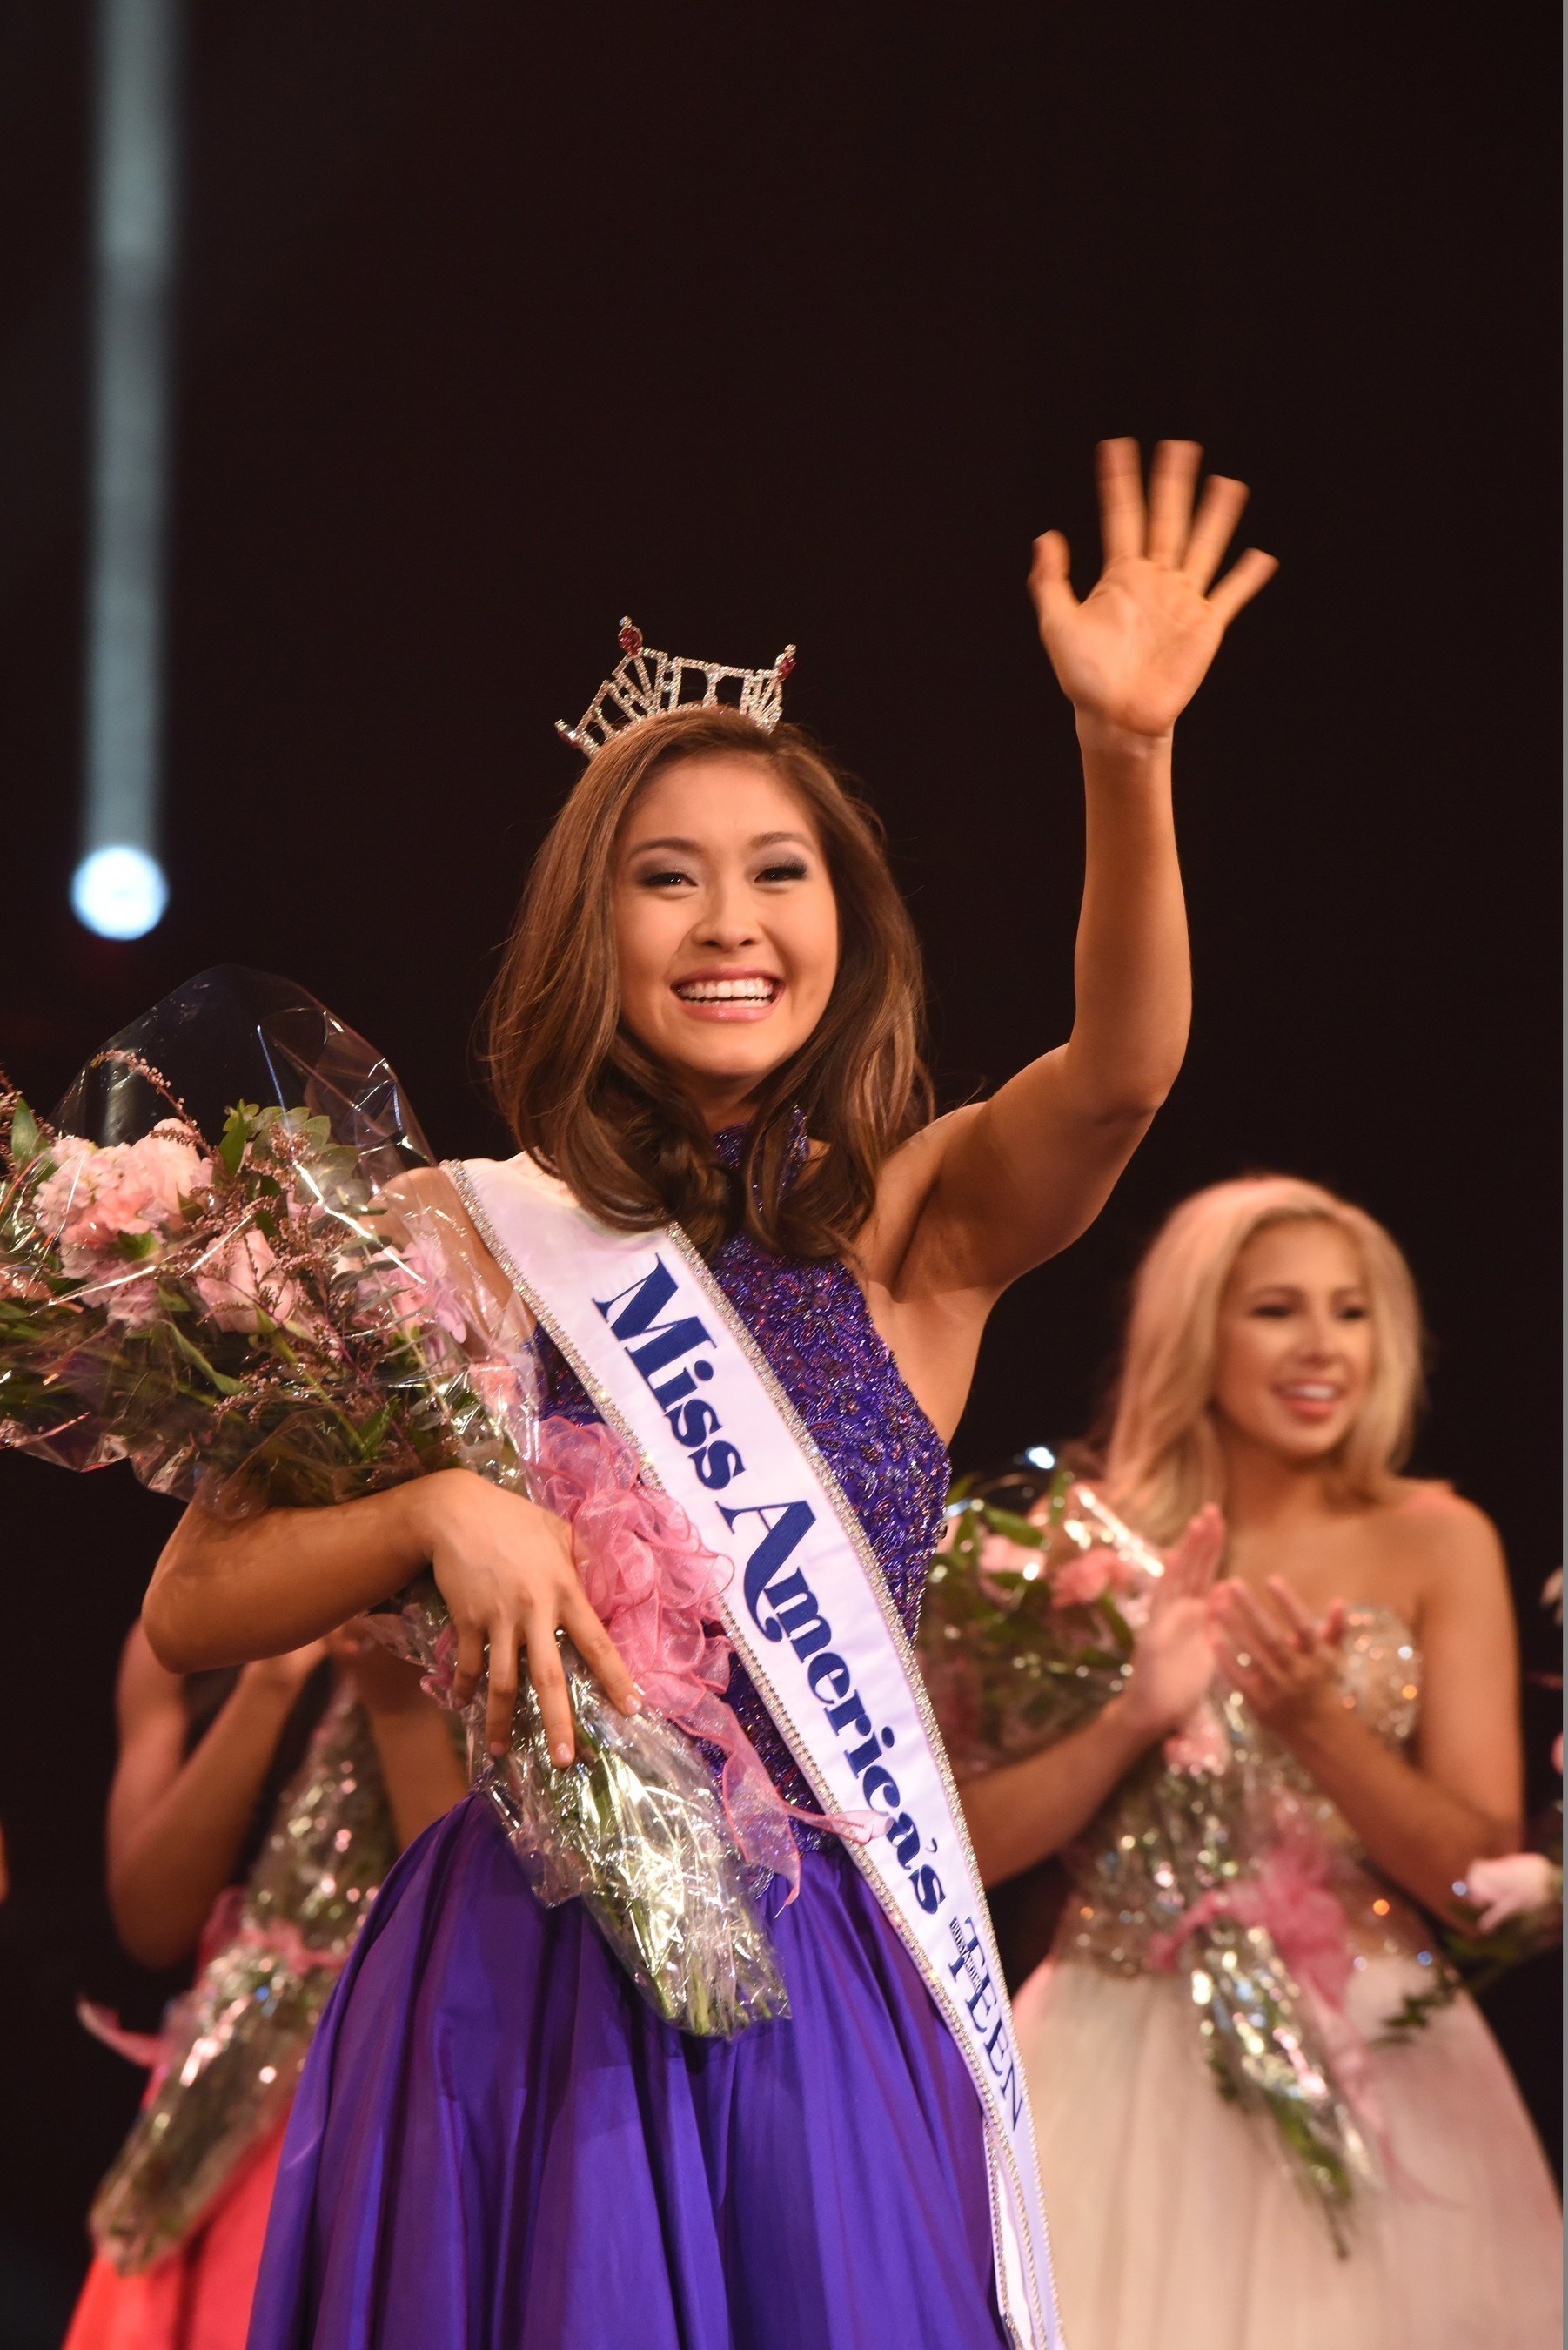 Miss America's Outstanding Teen 2017 Nicole Jia takes her first walk and waves to the crowd after being crowned at the Linda Chapin Theater inside the Orange County Convention Center in Orlando. www.maoteen.org